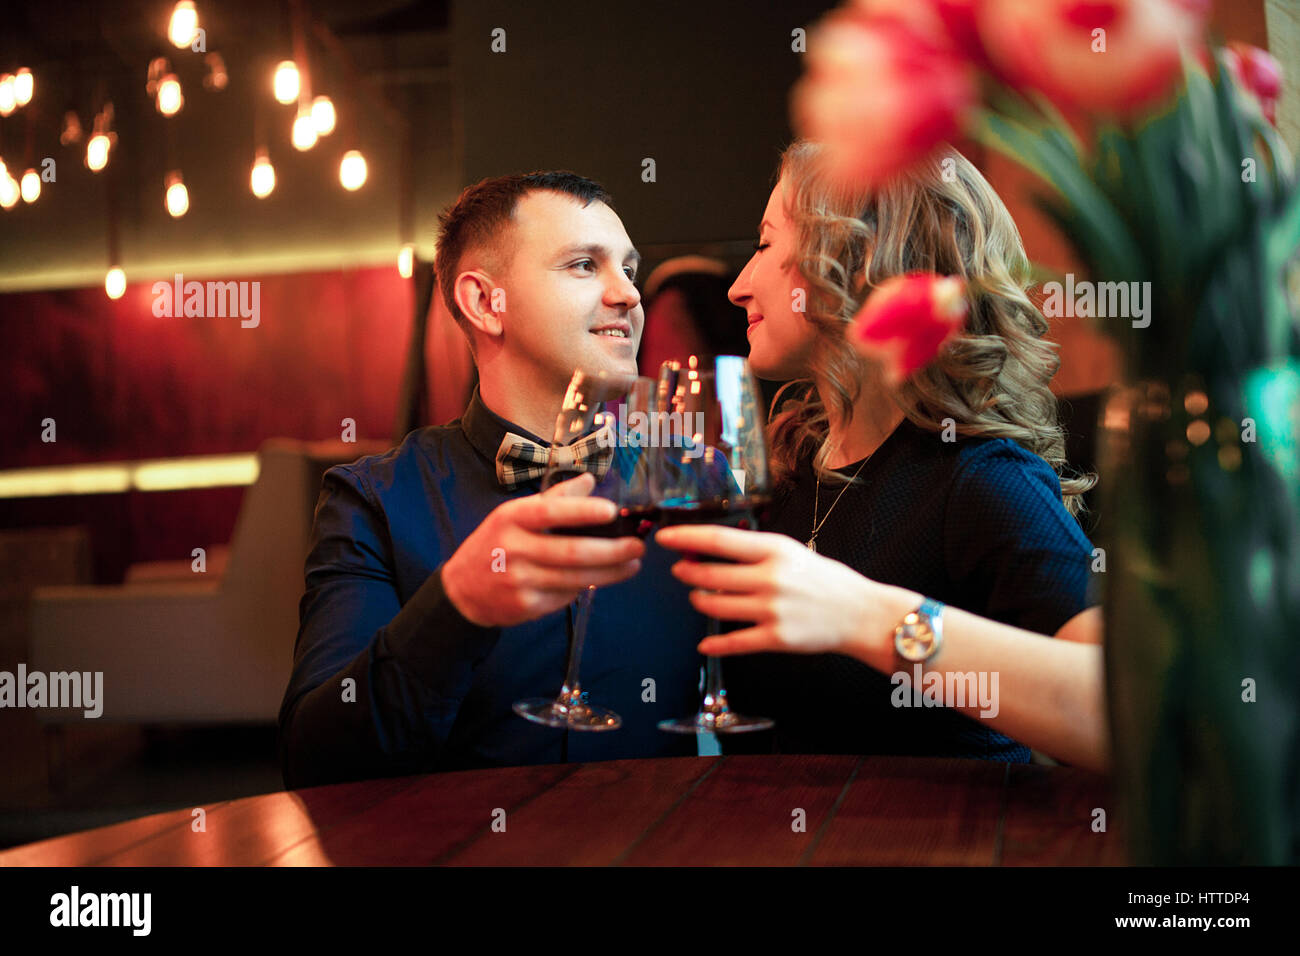 Young man clinks glasses with woman and makes her marriage proposal. They are sitting at the table. - Stock Image